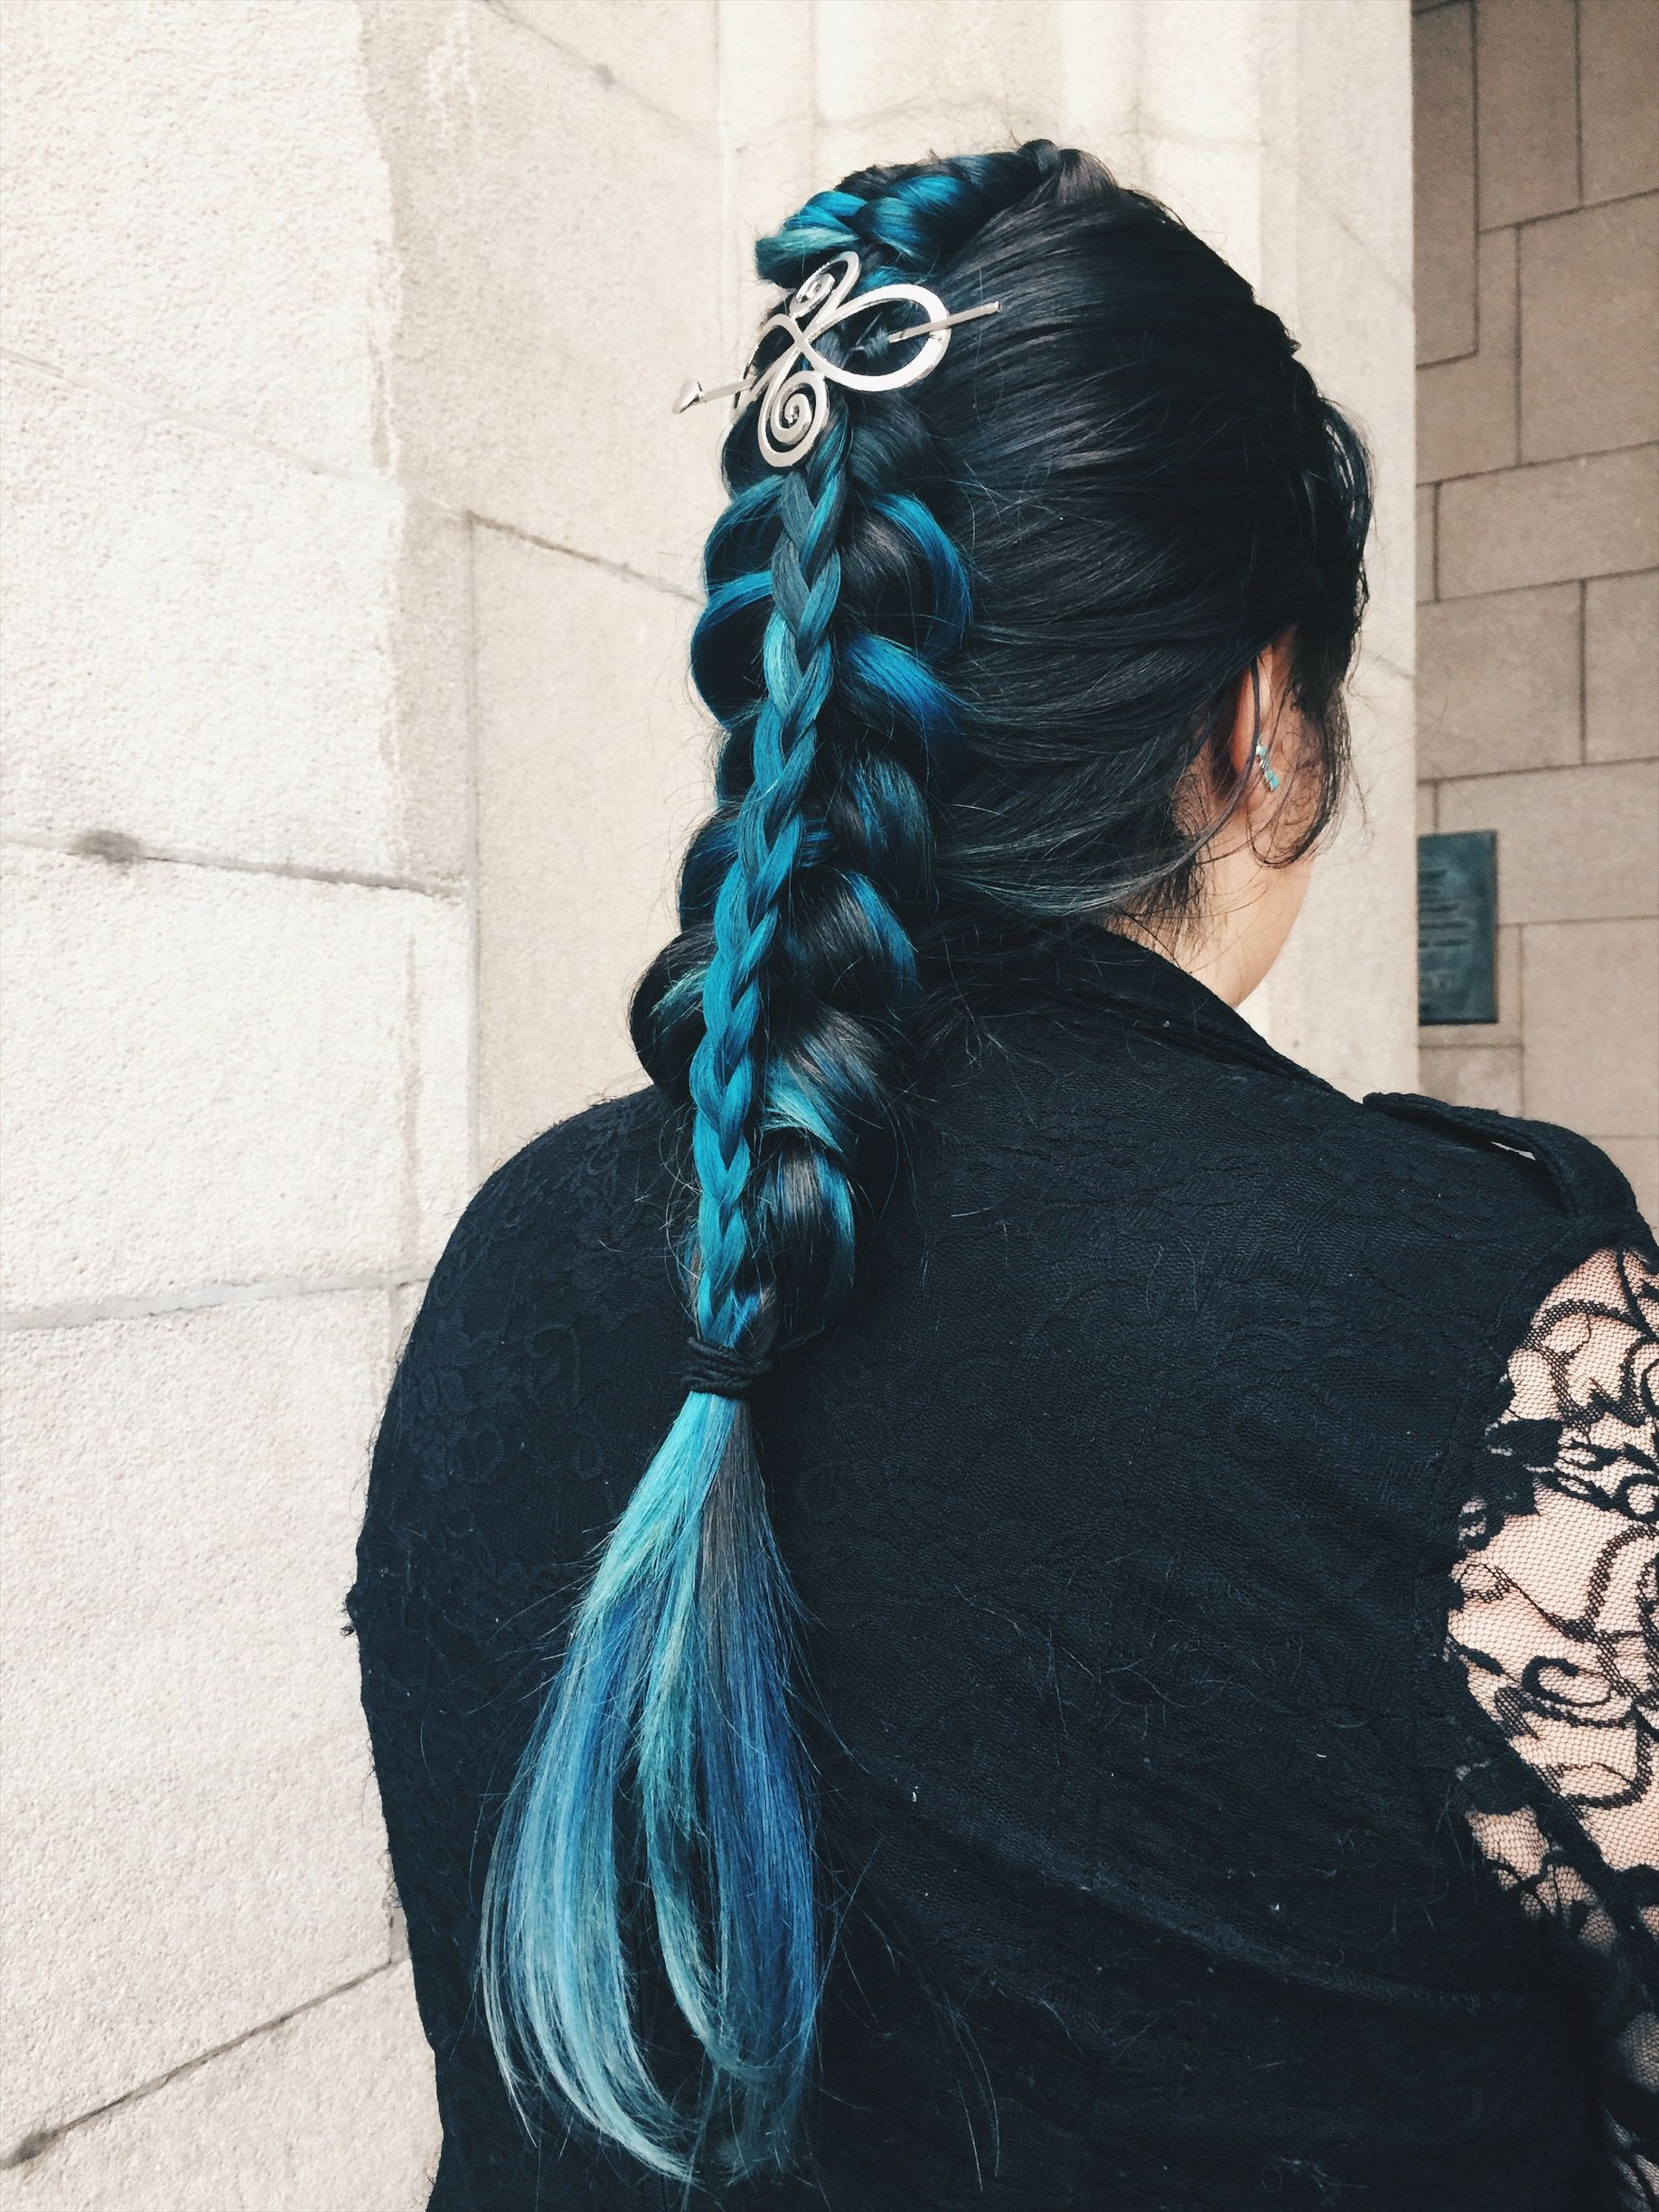 Devinus stacked braids amazing way to stand out at festivals uc